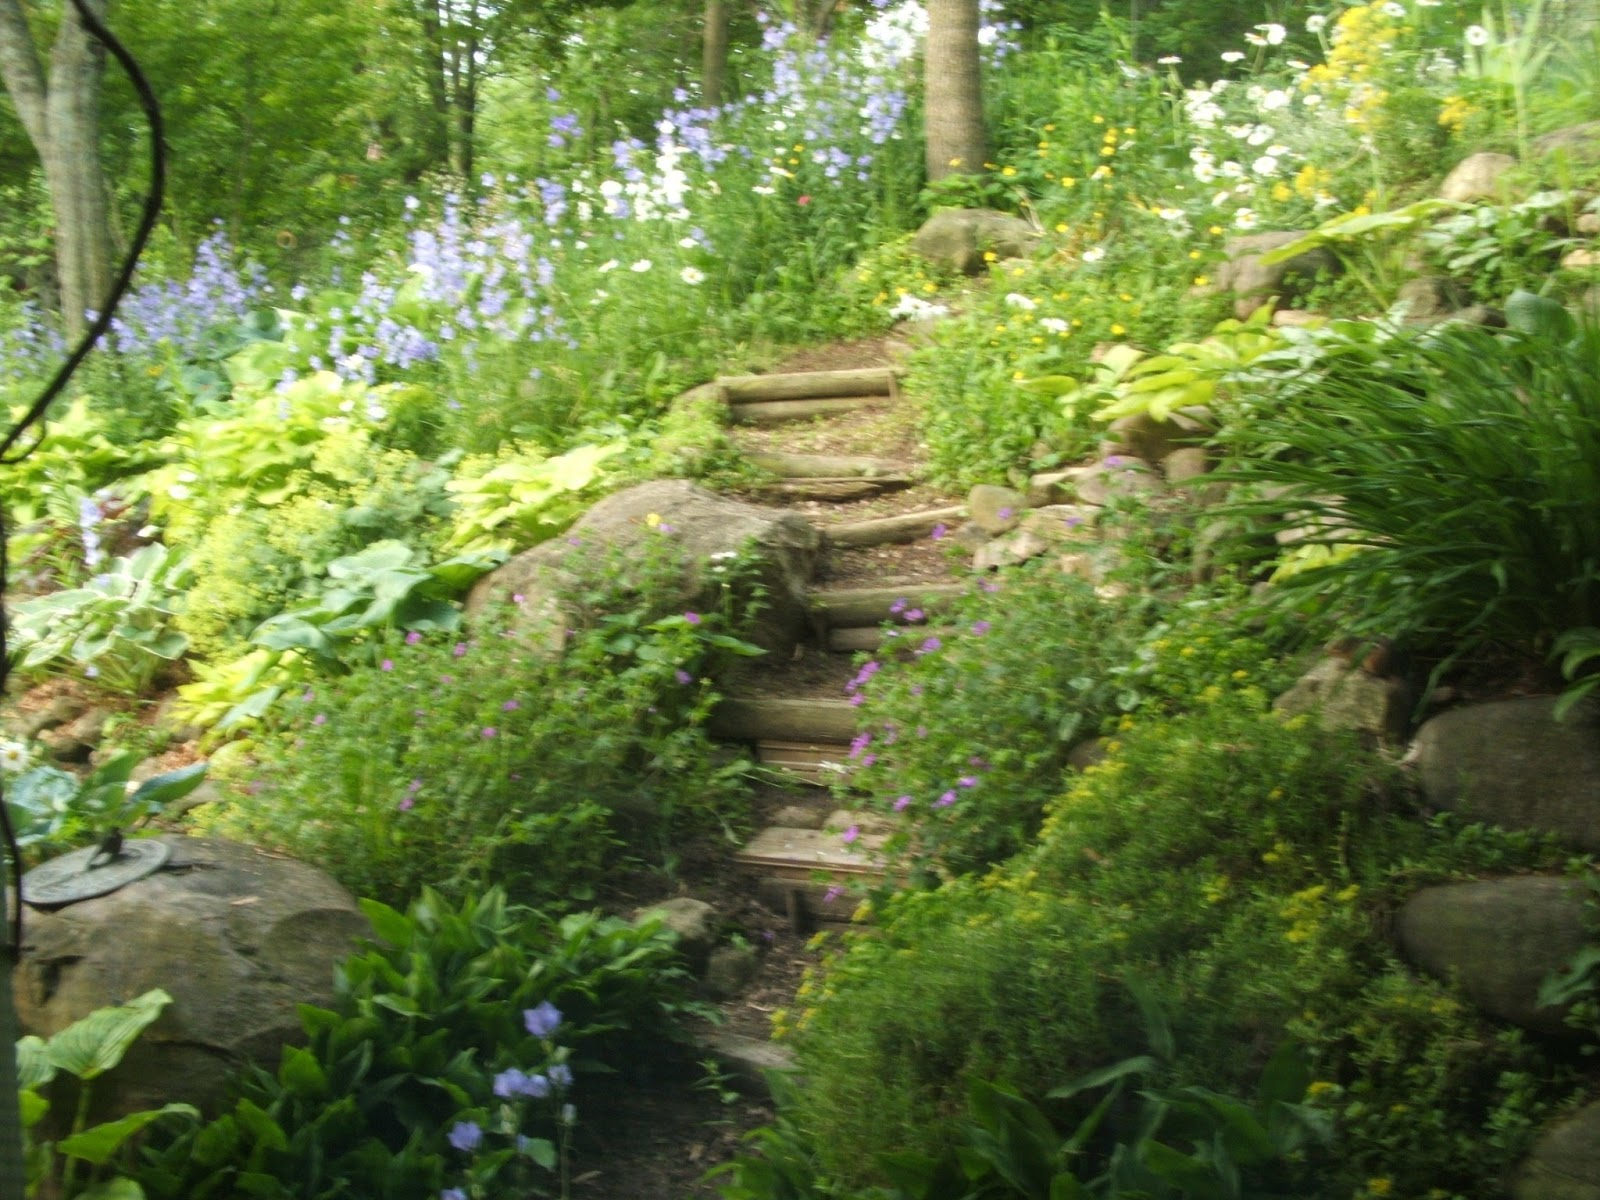 garden path going steps going steep garden rock garden garden paths